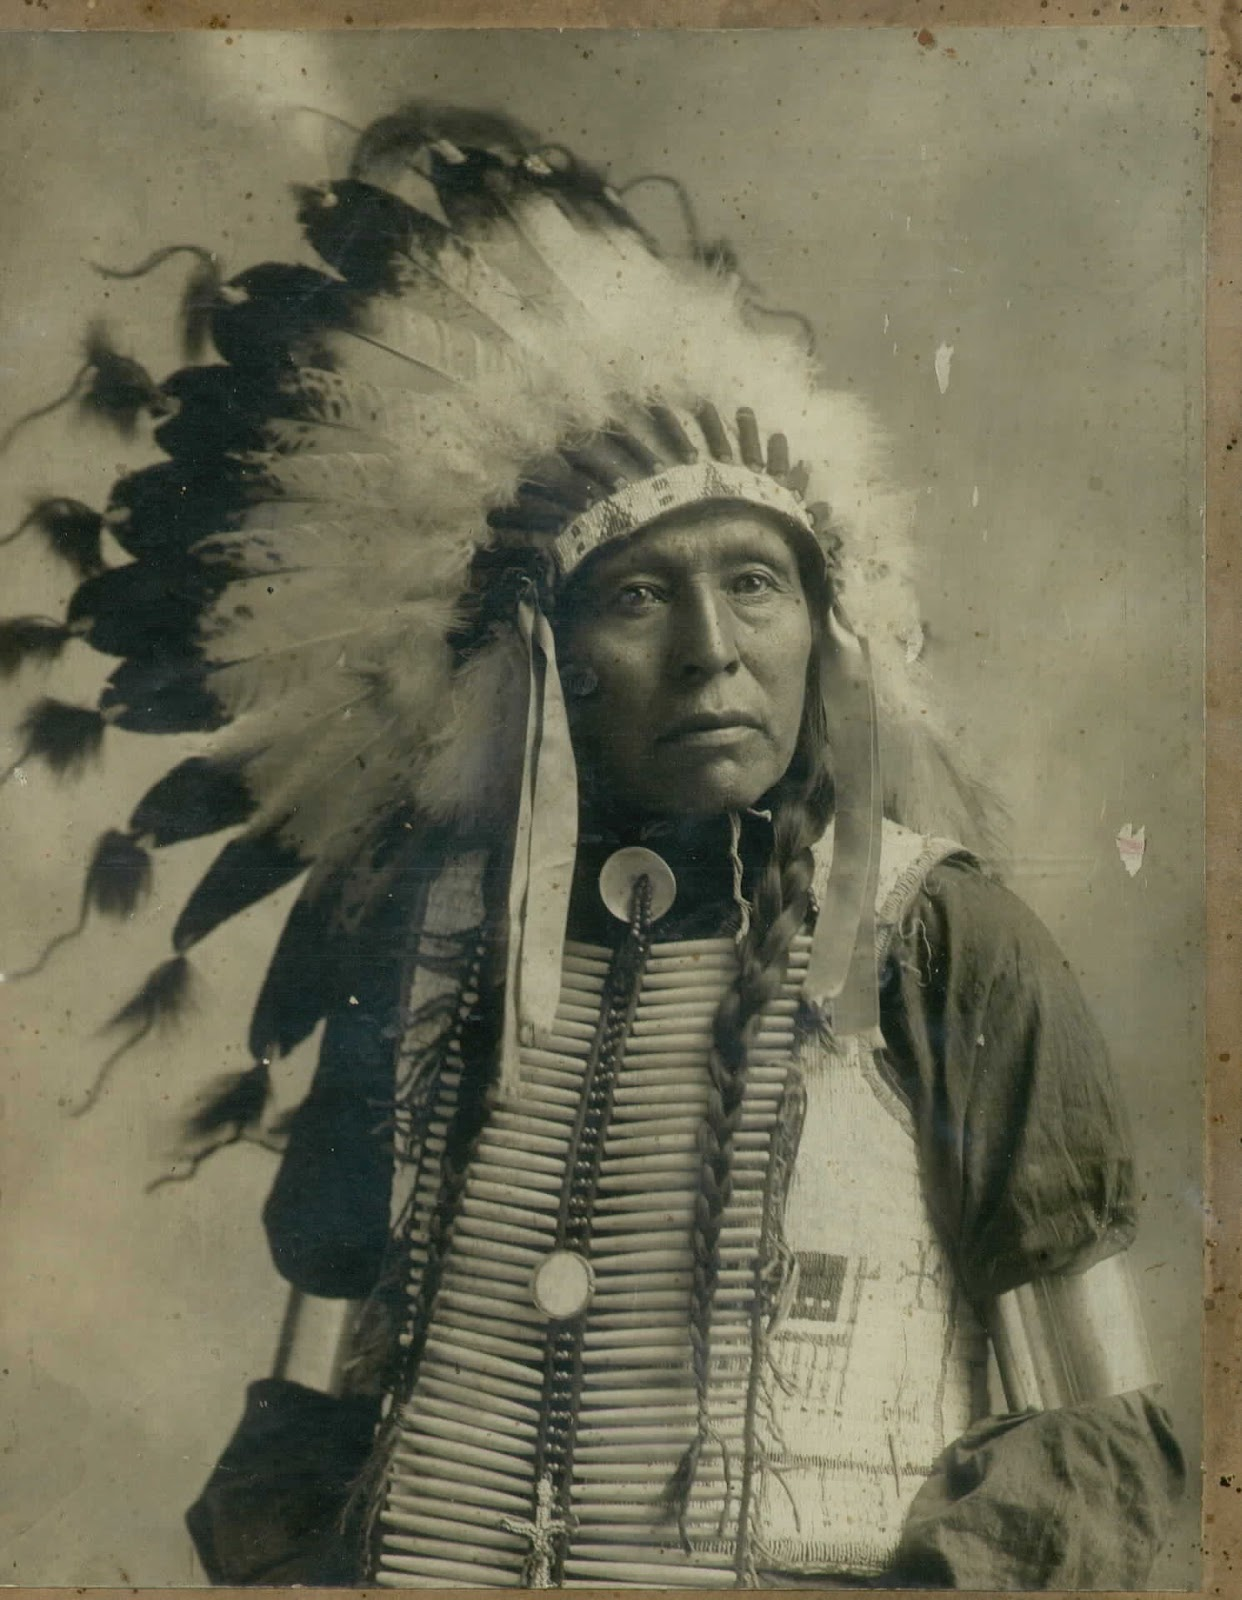 http://3.bp.blogspot.com/-p7bDDNaFW04/T_zUkli5fQI/AAAAAAAABc0/lRof3bbF0y8/s1600/indian_chief_with_head_dress.jpg